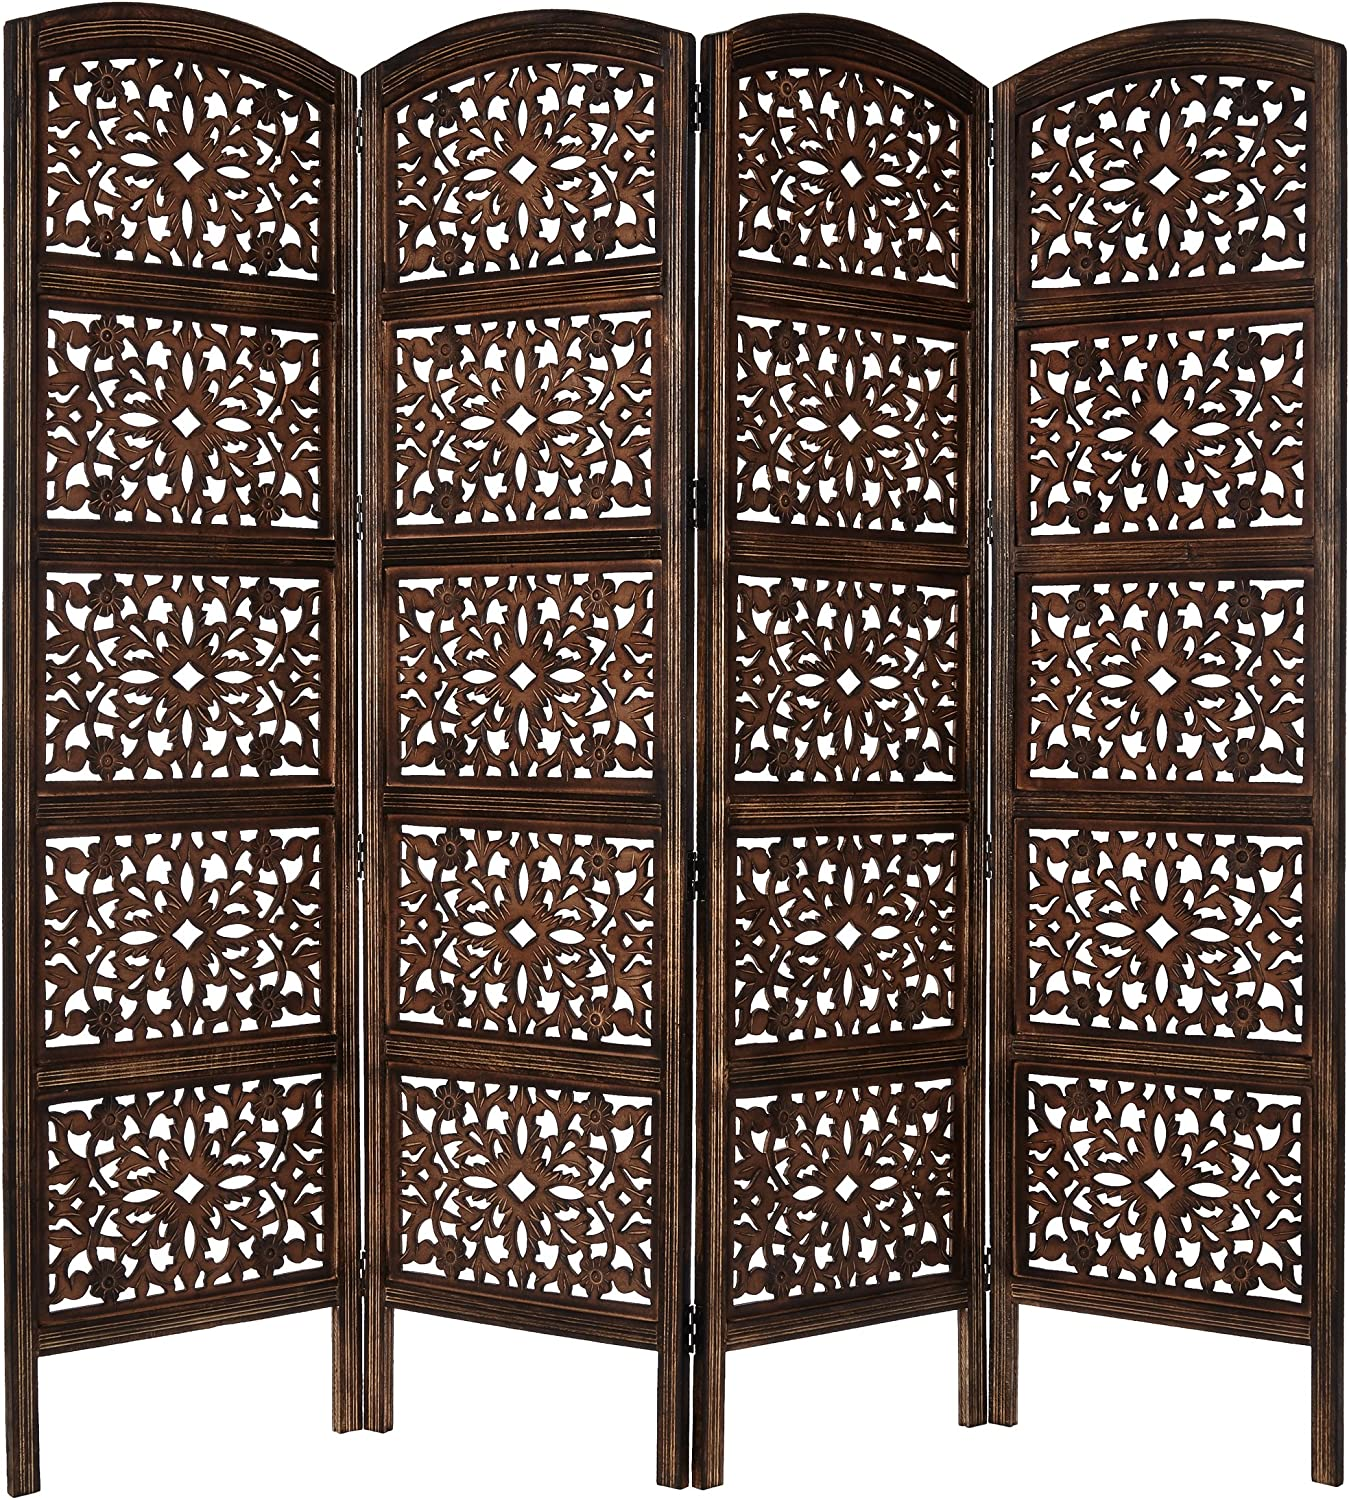 Rajasthan- Antique Brown 4 Panel Handcrafted Wood Room Divider Screen 72x80, Intricately Carved on Both Sides - Reversible- Hides clutter, Adds Décor, & Divides the Room (Antique Brown Rajasthan)